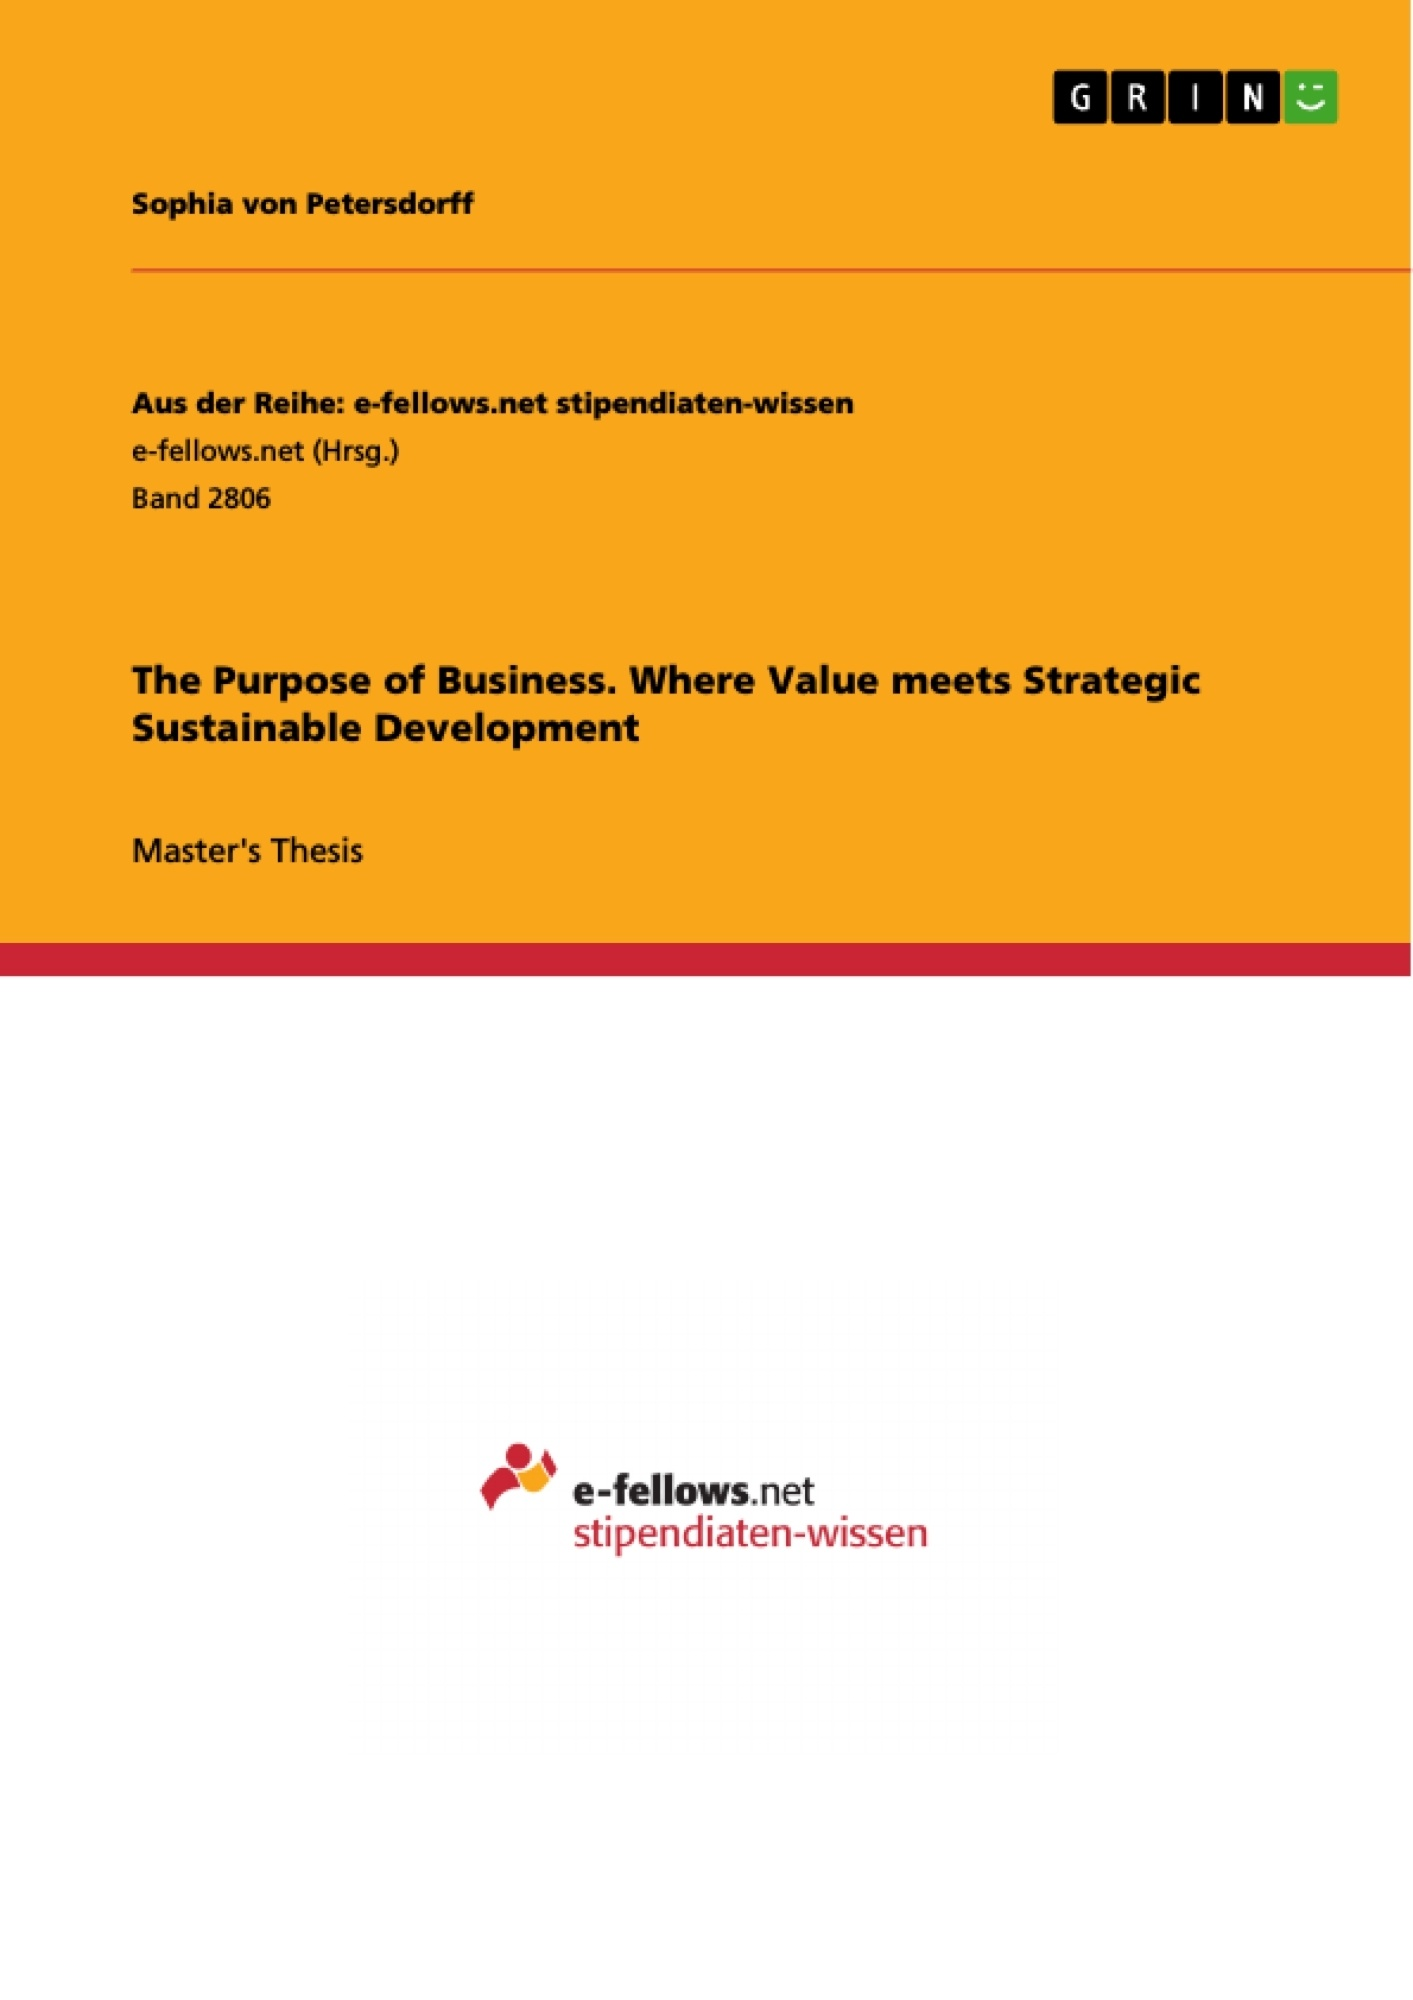 Title: The Purpose of Business. Where Value meets Strategic Sustainable Development